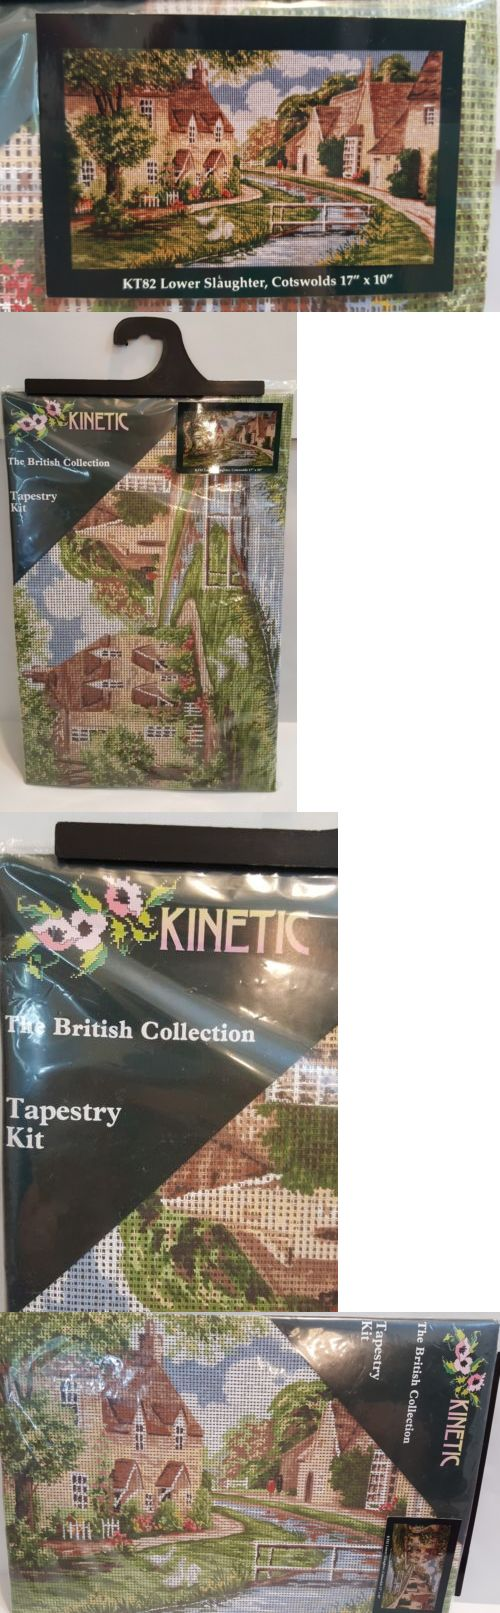 Needlepoint Kits 3109: Kinetic Tapestry Kit The British Collection Lower Slaughter Cotswolds Kt82 17X10 -> BUY IT NOW ONLY: $34.95 on eBay!